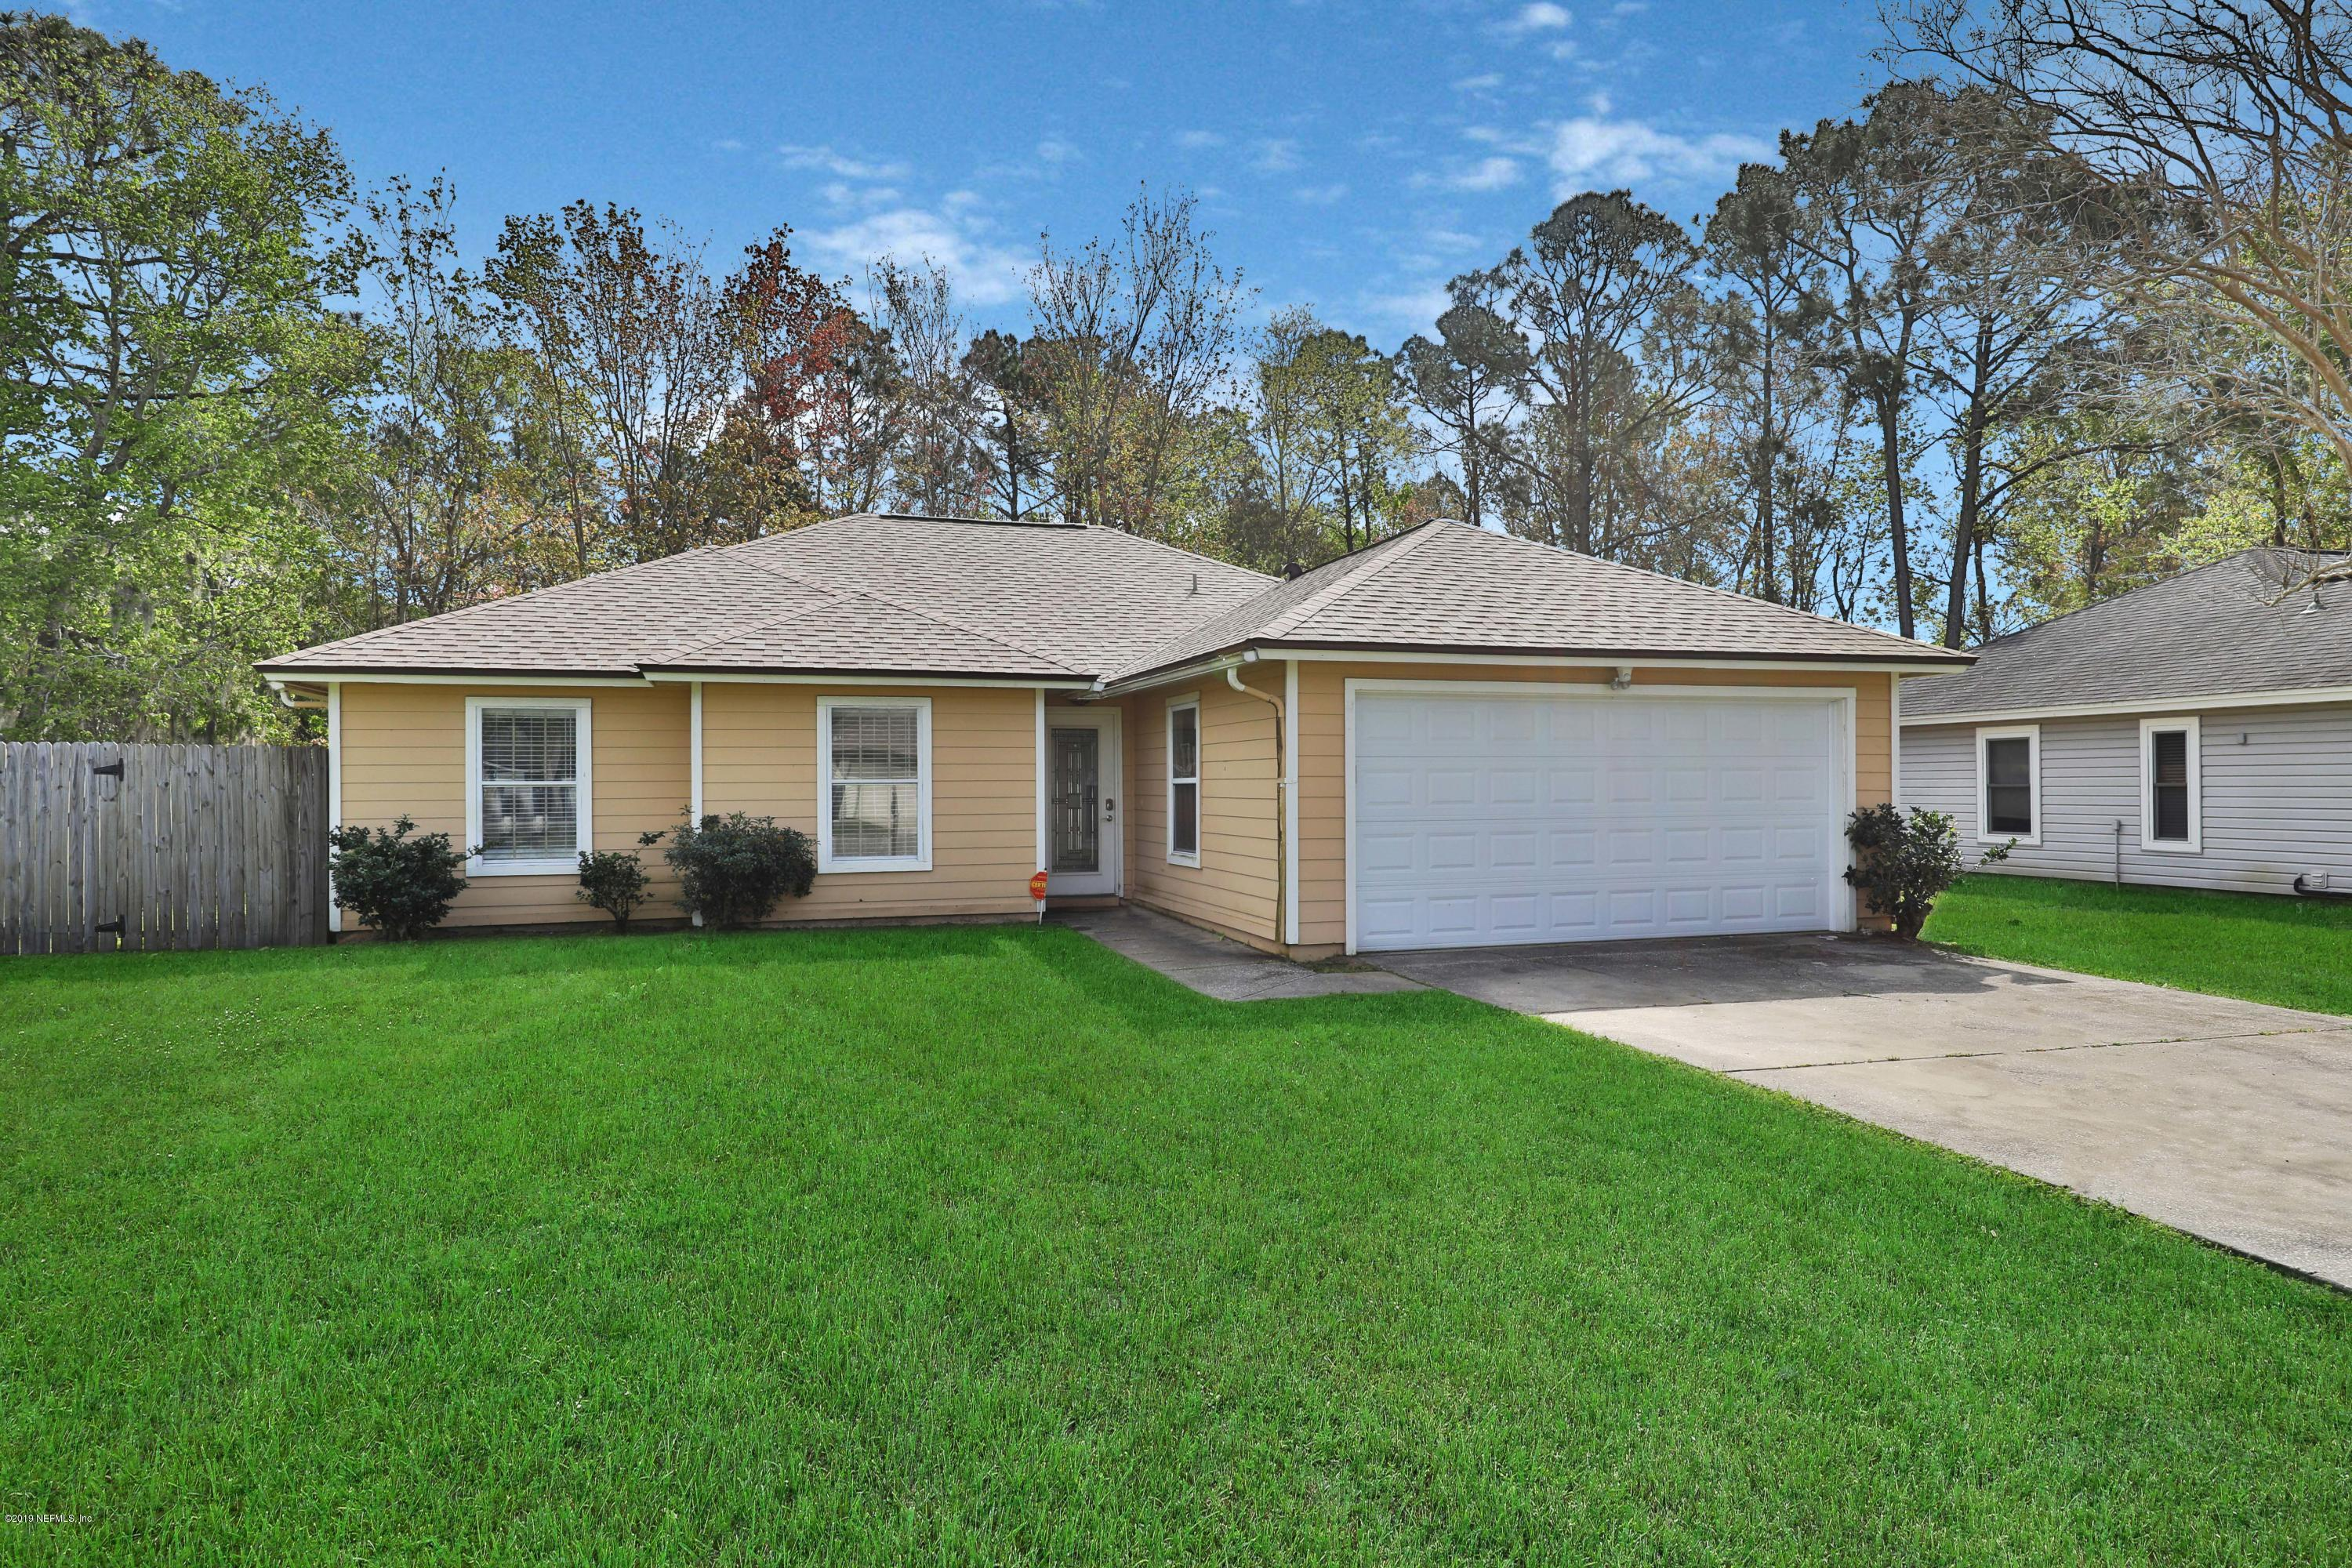 95 CRYSTAL BRANCH, JACKSONVILLE, FLORIDA 32225, 4 Bedrooms Bedrooms, ,2 BathroomsBathrooms,Residential - single family,For sale,CRYSTAL BRANCH,985358